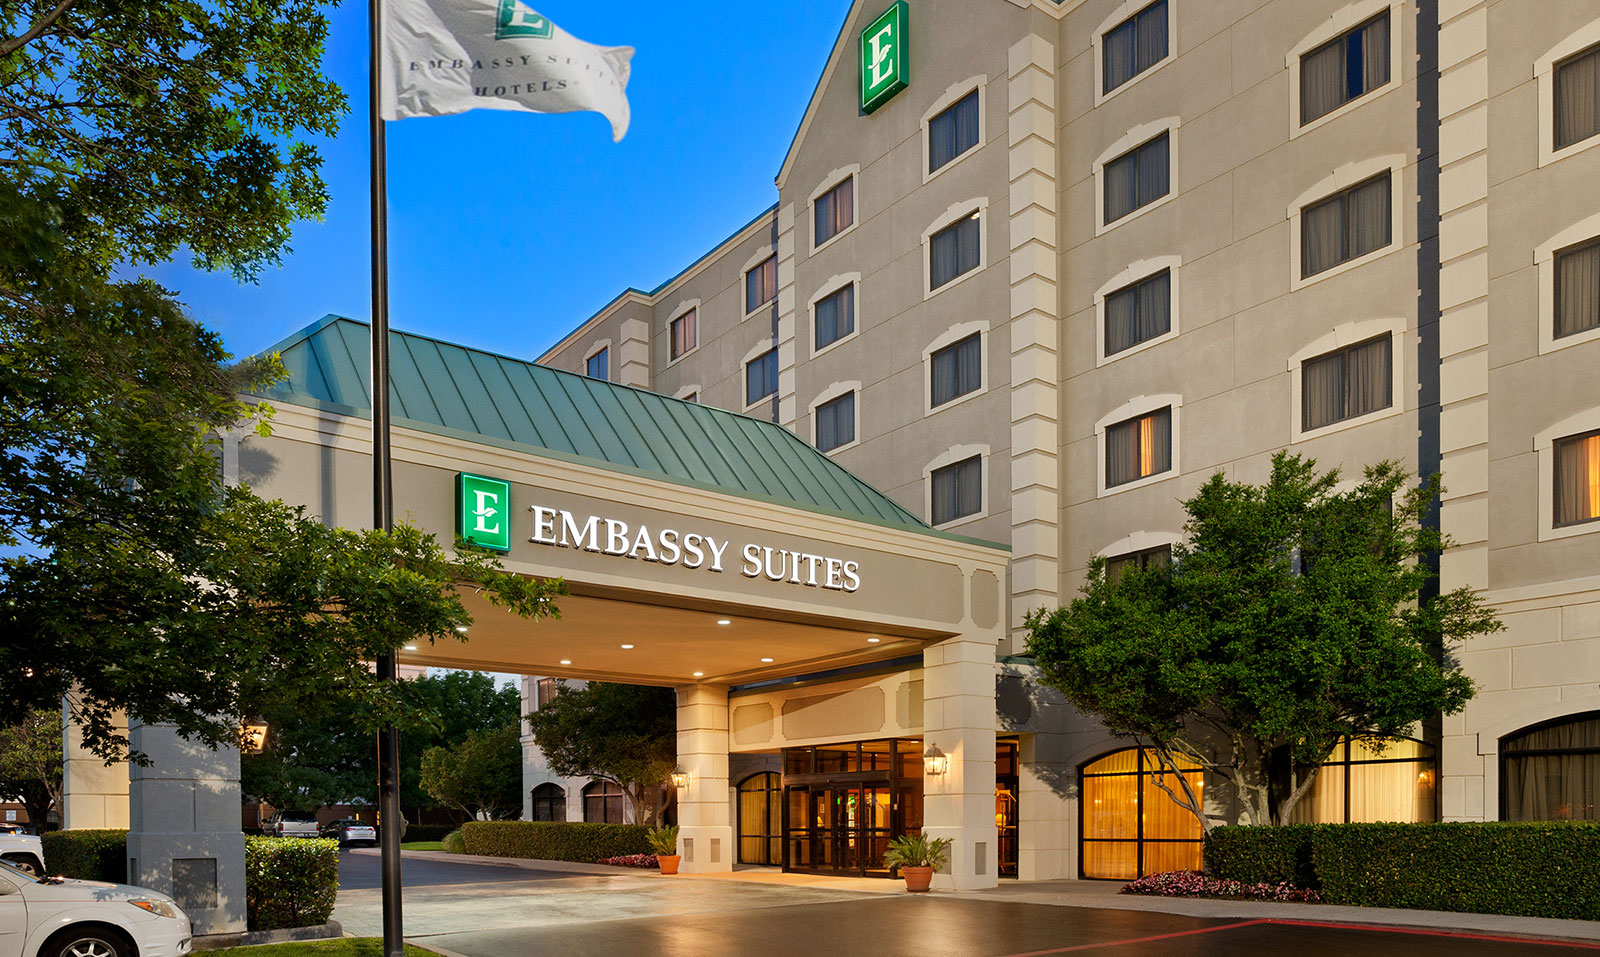 Embassy Suites Hotel Near Philadelphia Airport